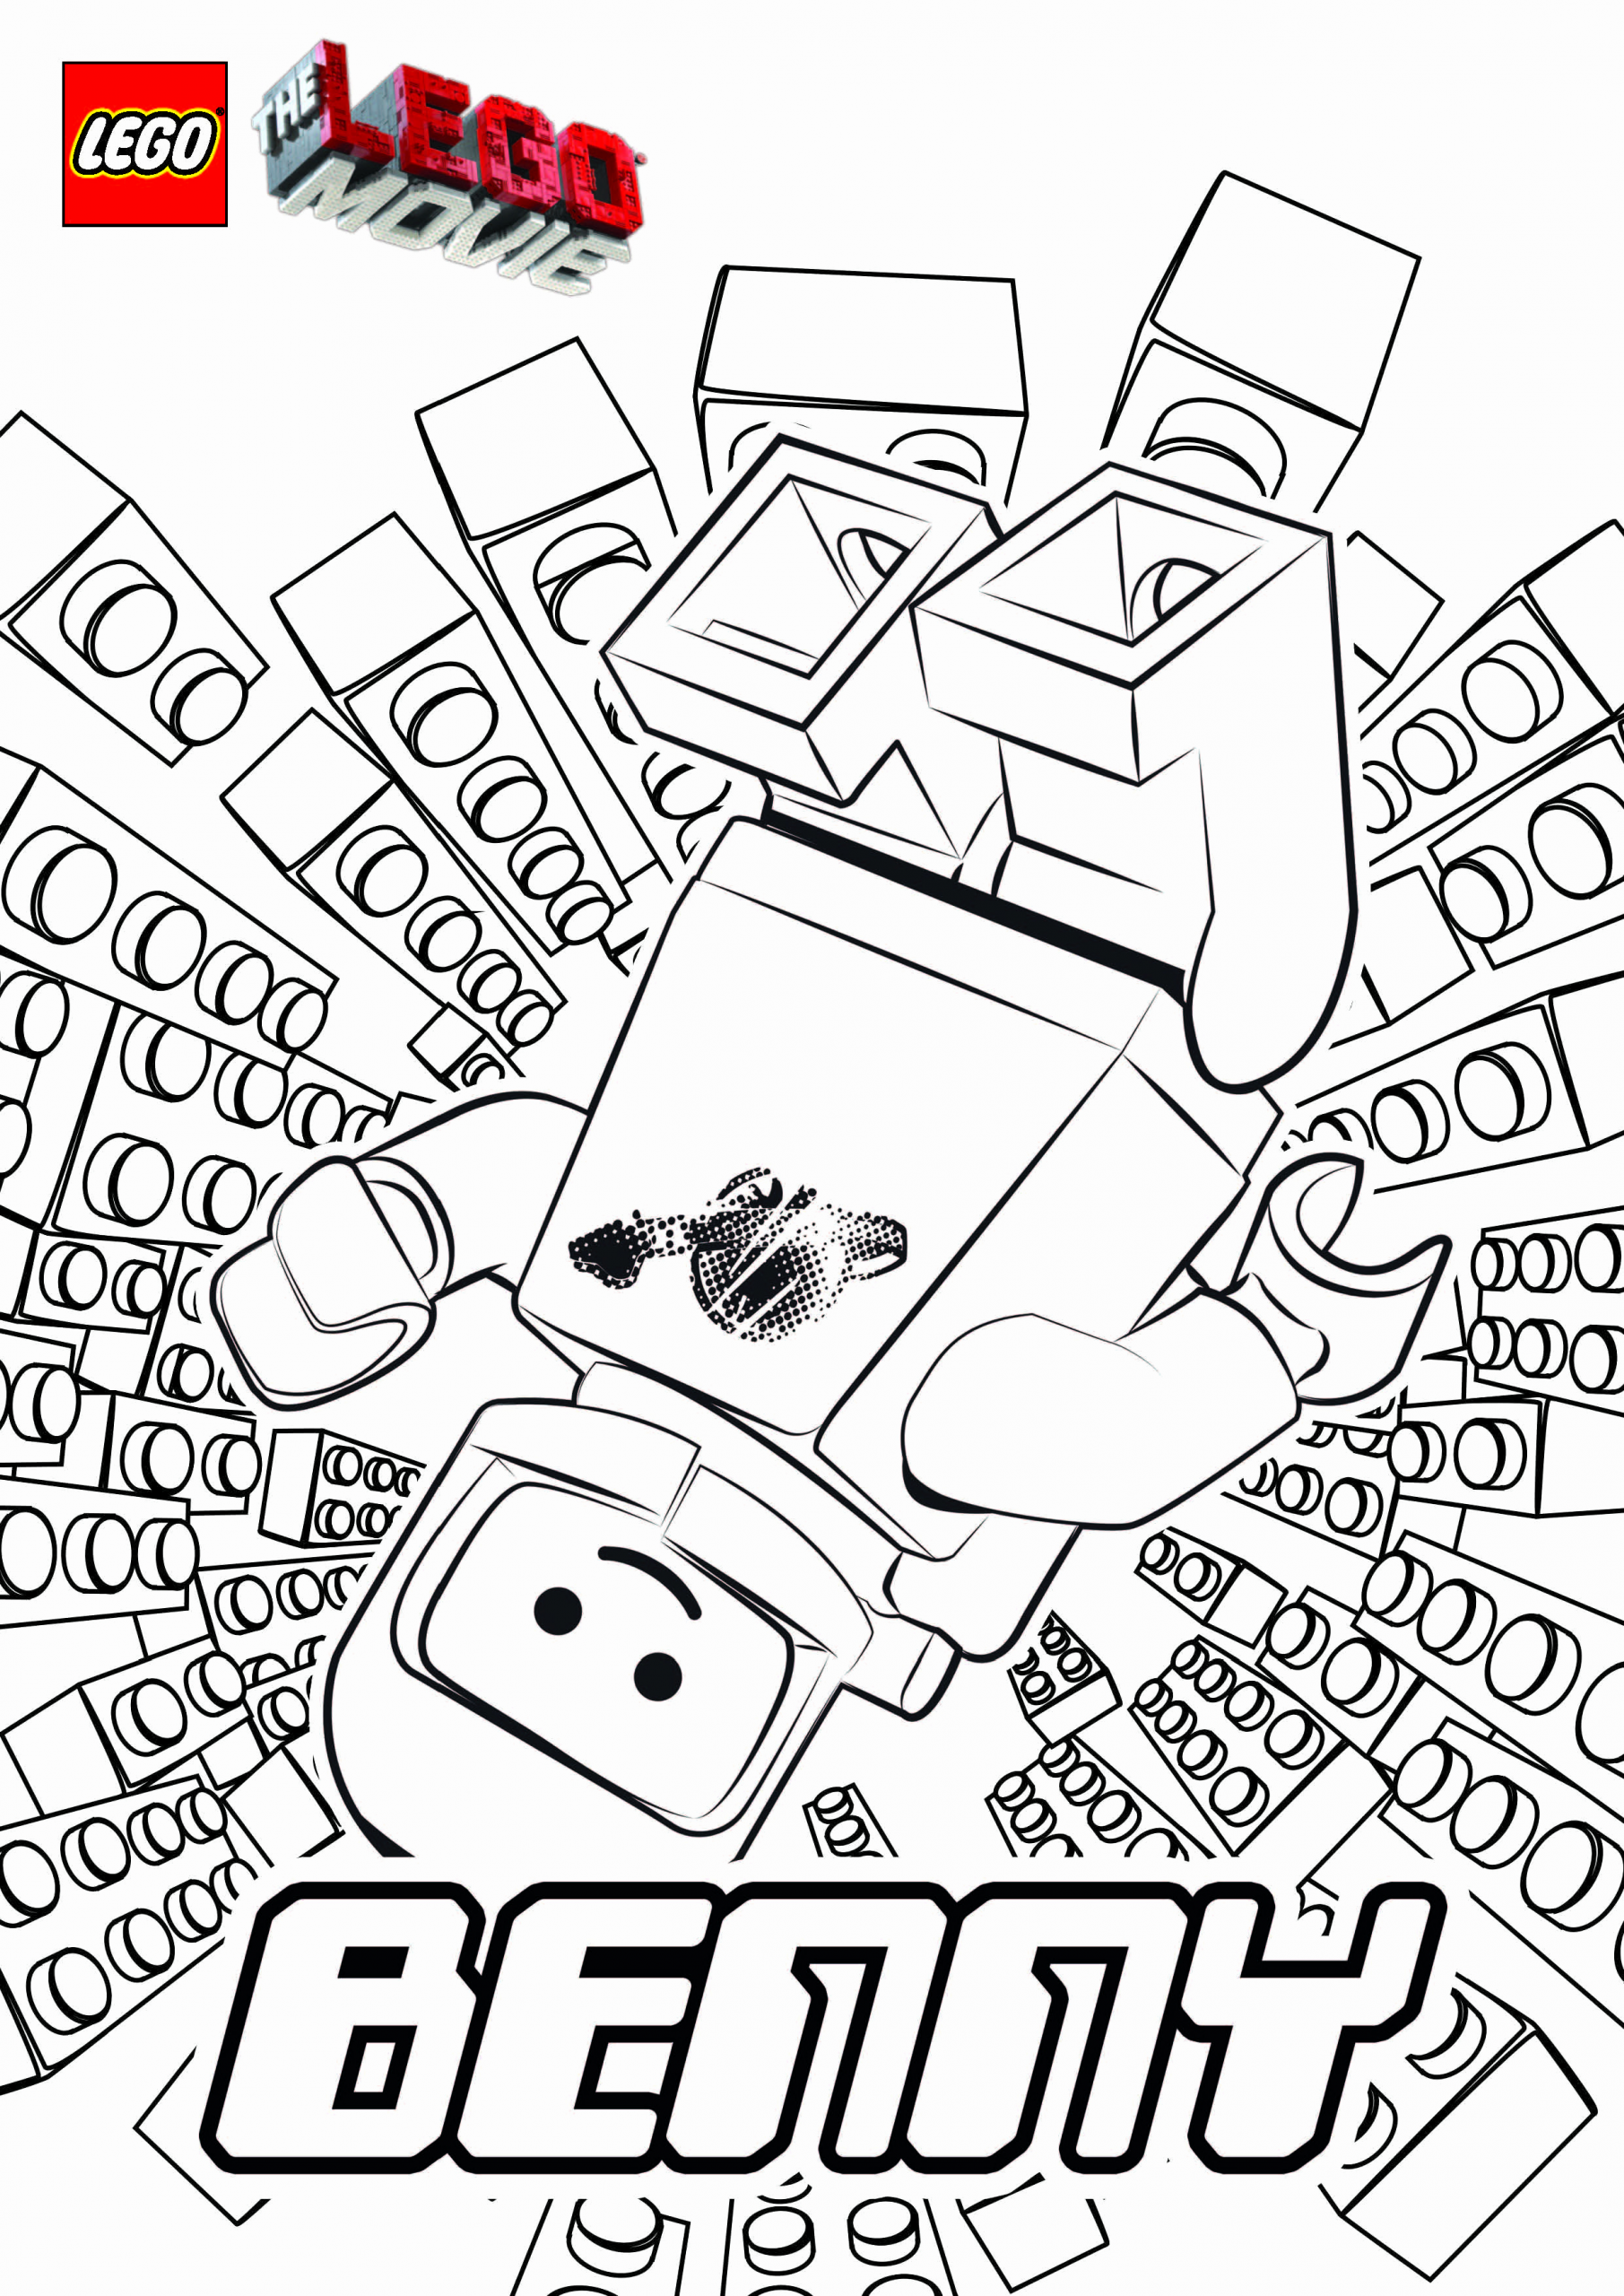 The Lego Movie Coloring Pages For Kids In